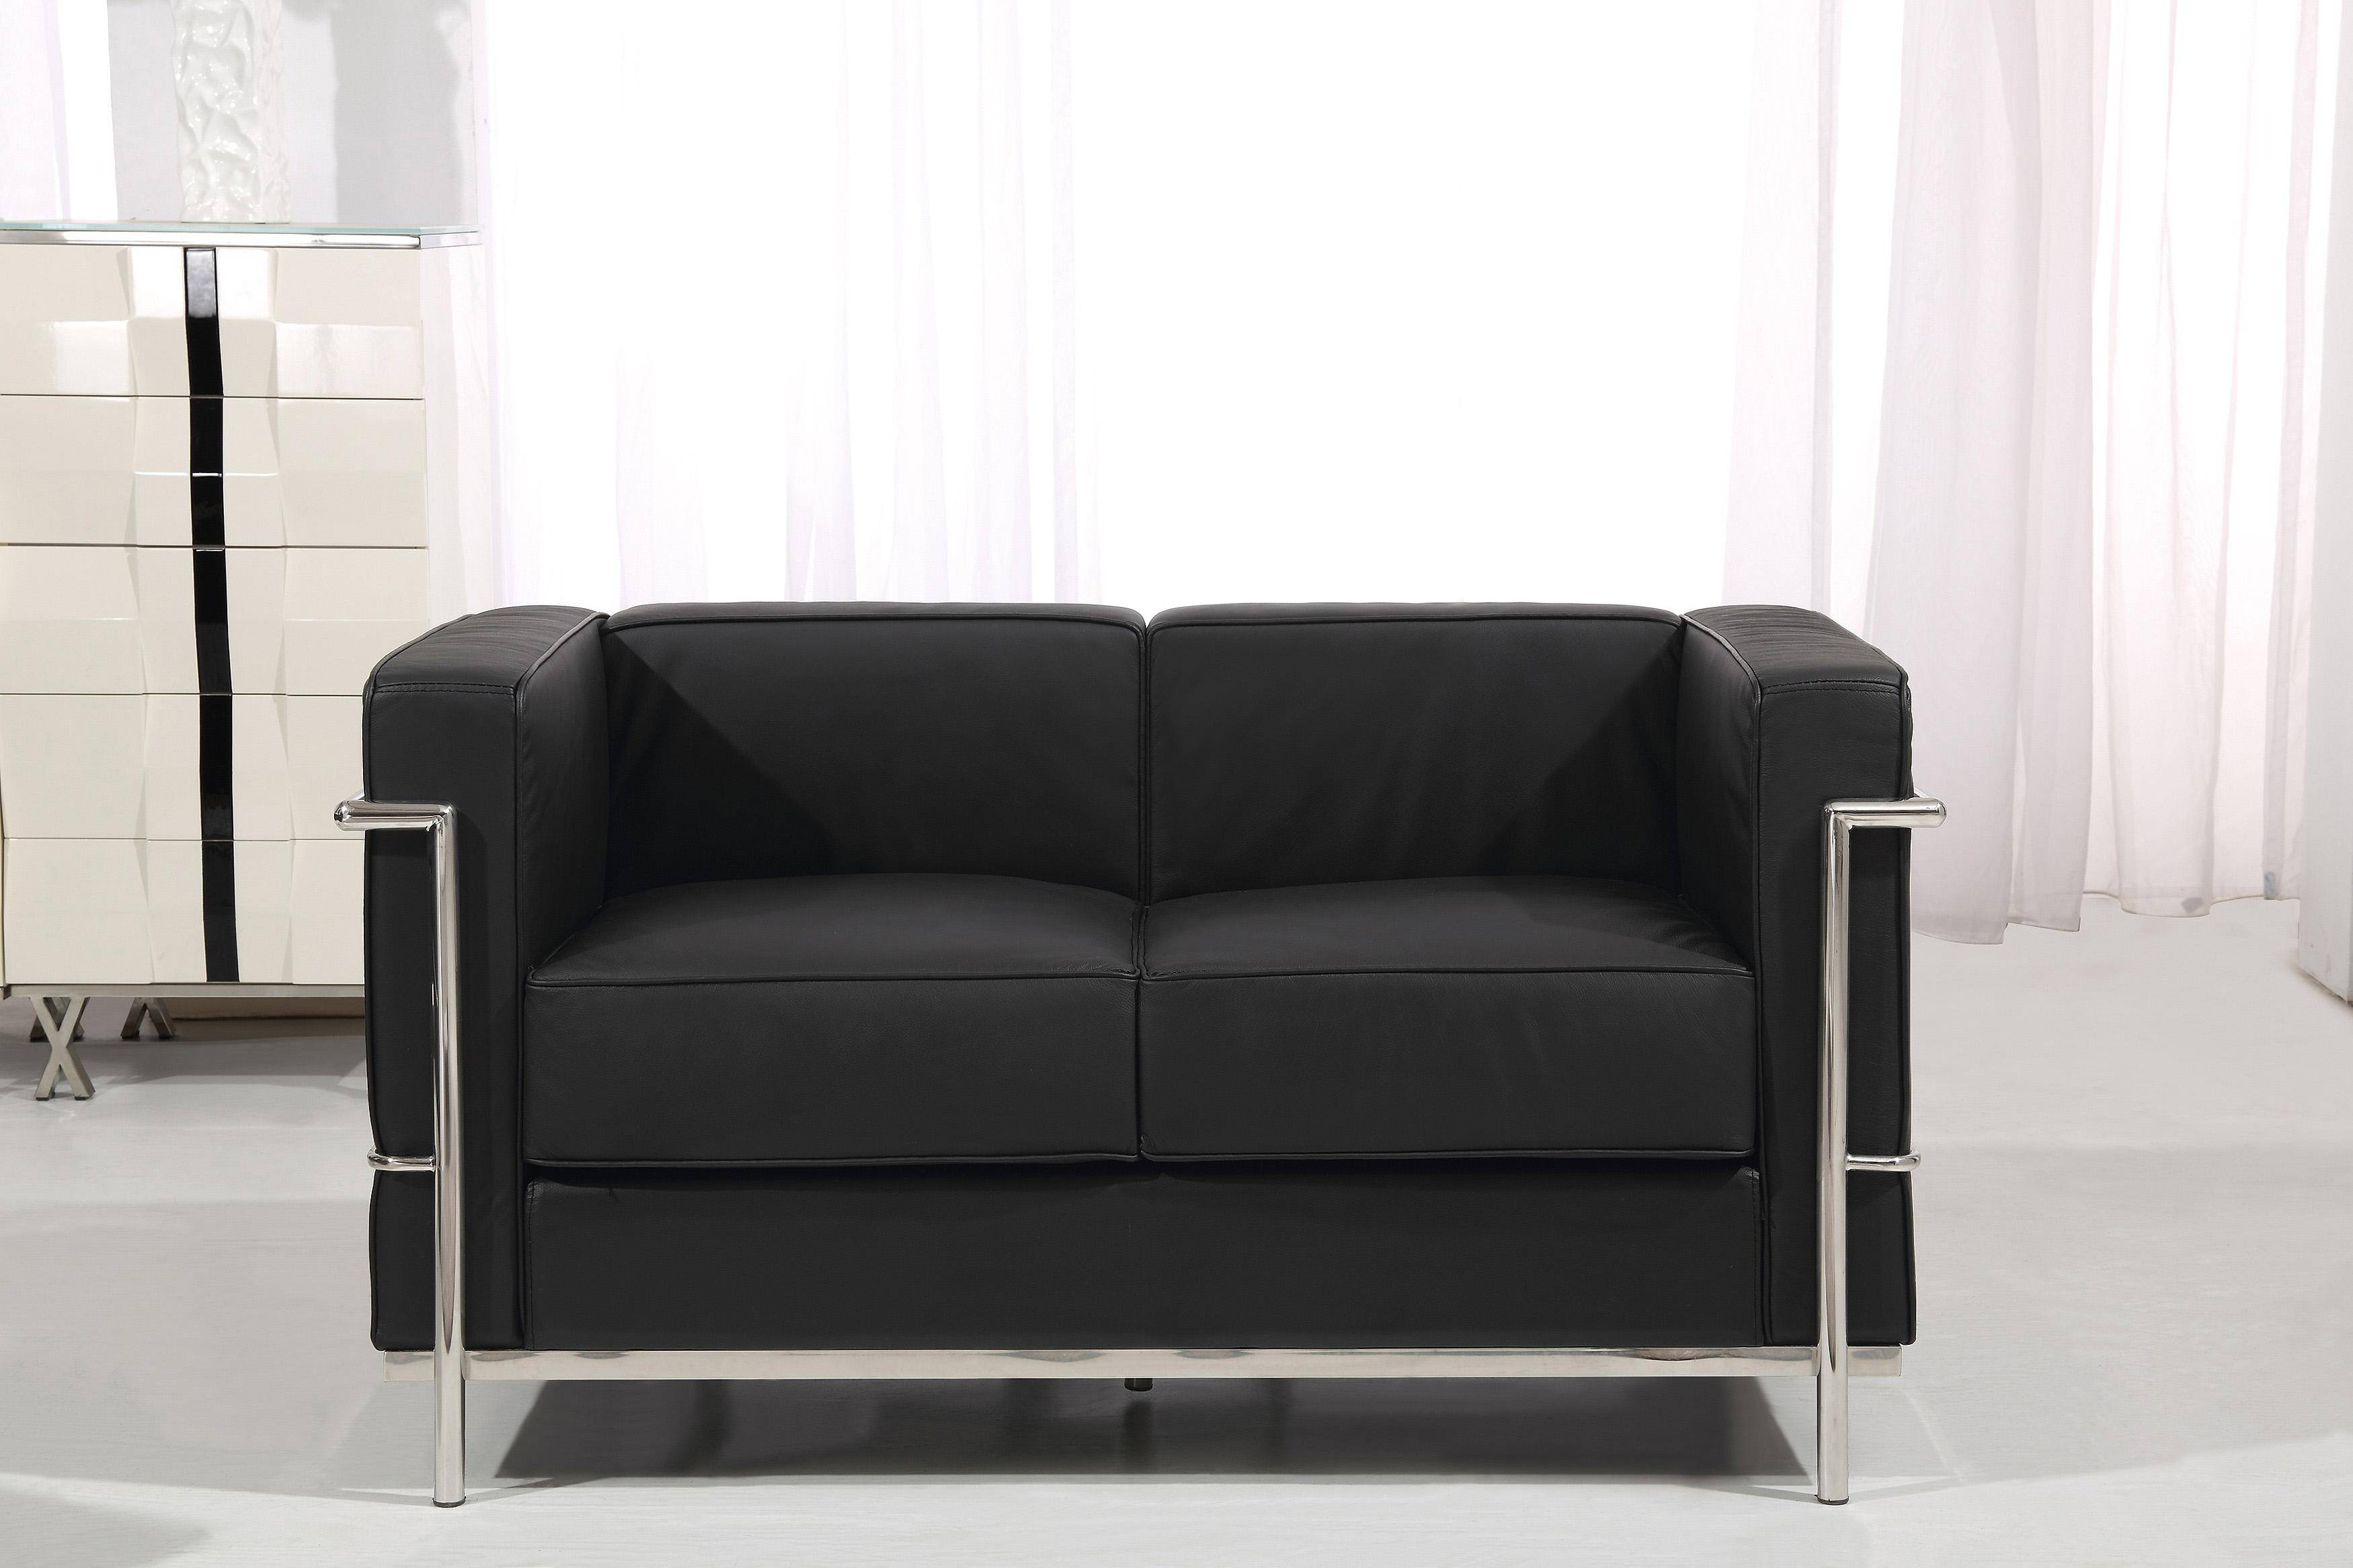 At Home Usa Nube Black Leather Living Room Sofa Set Pcs